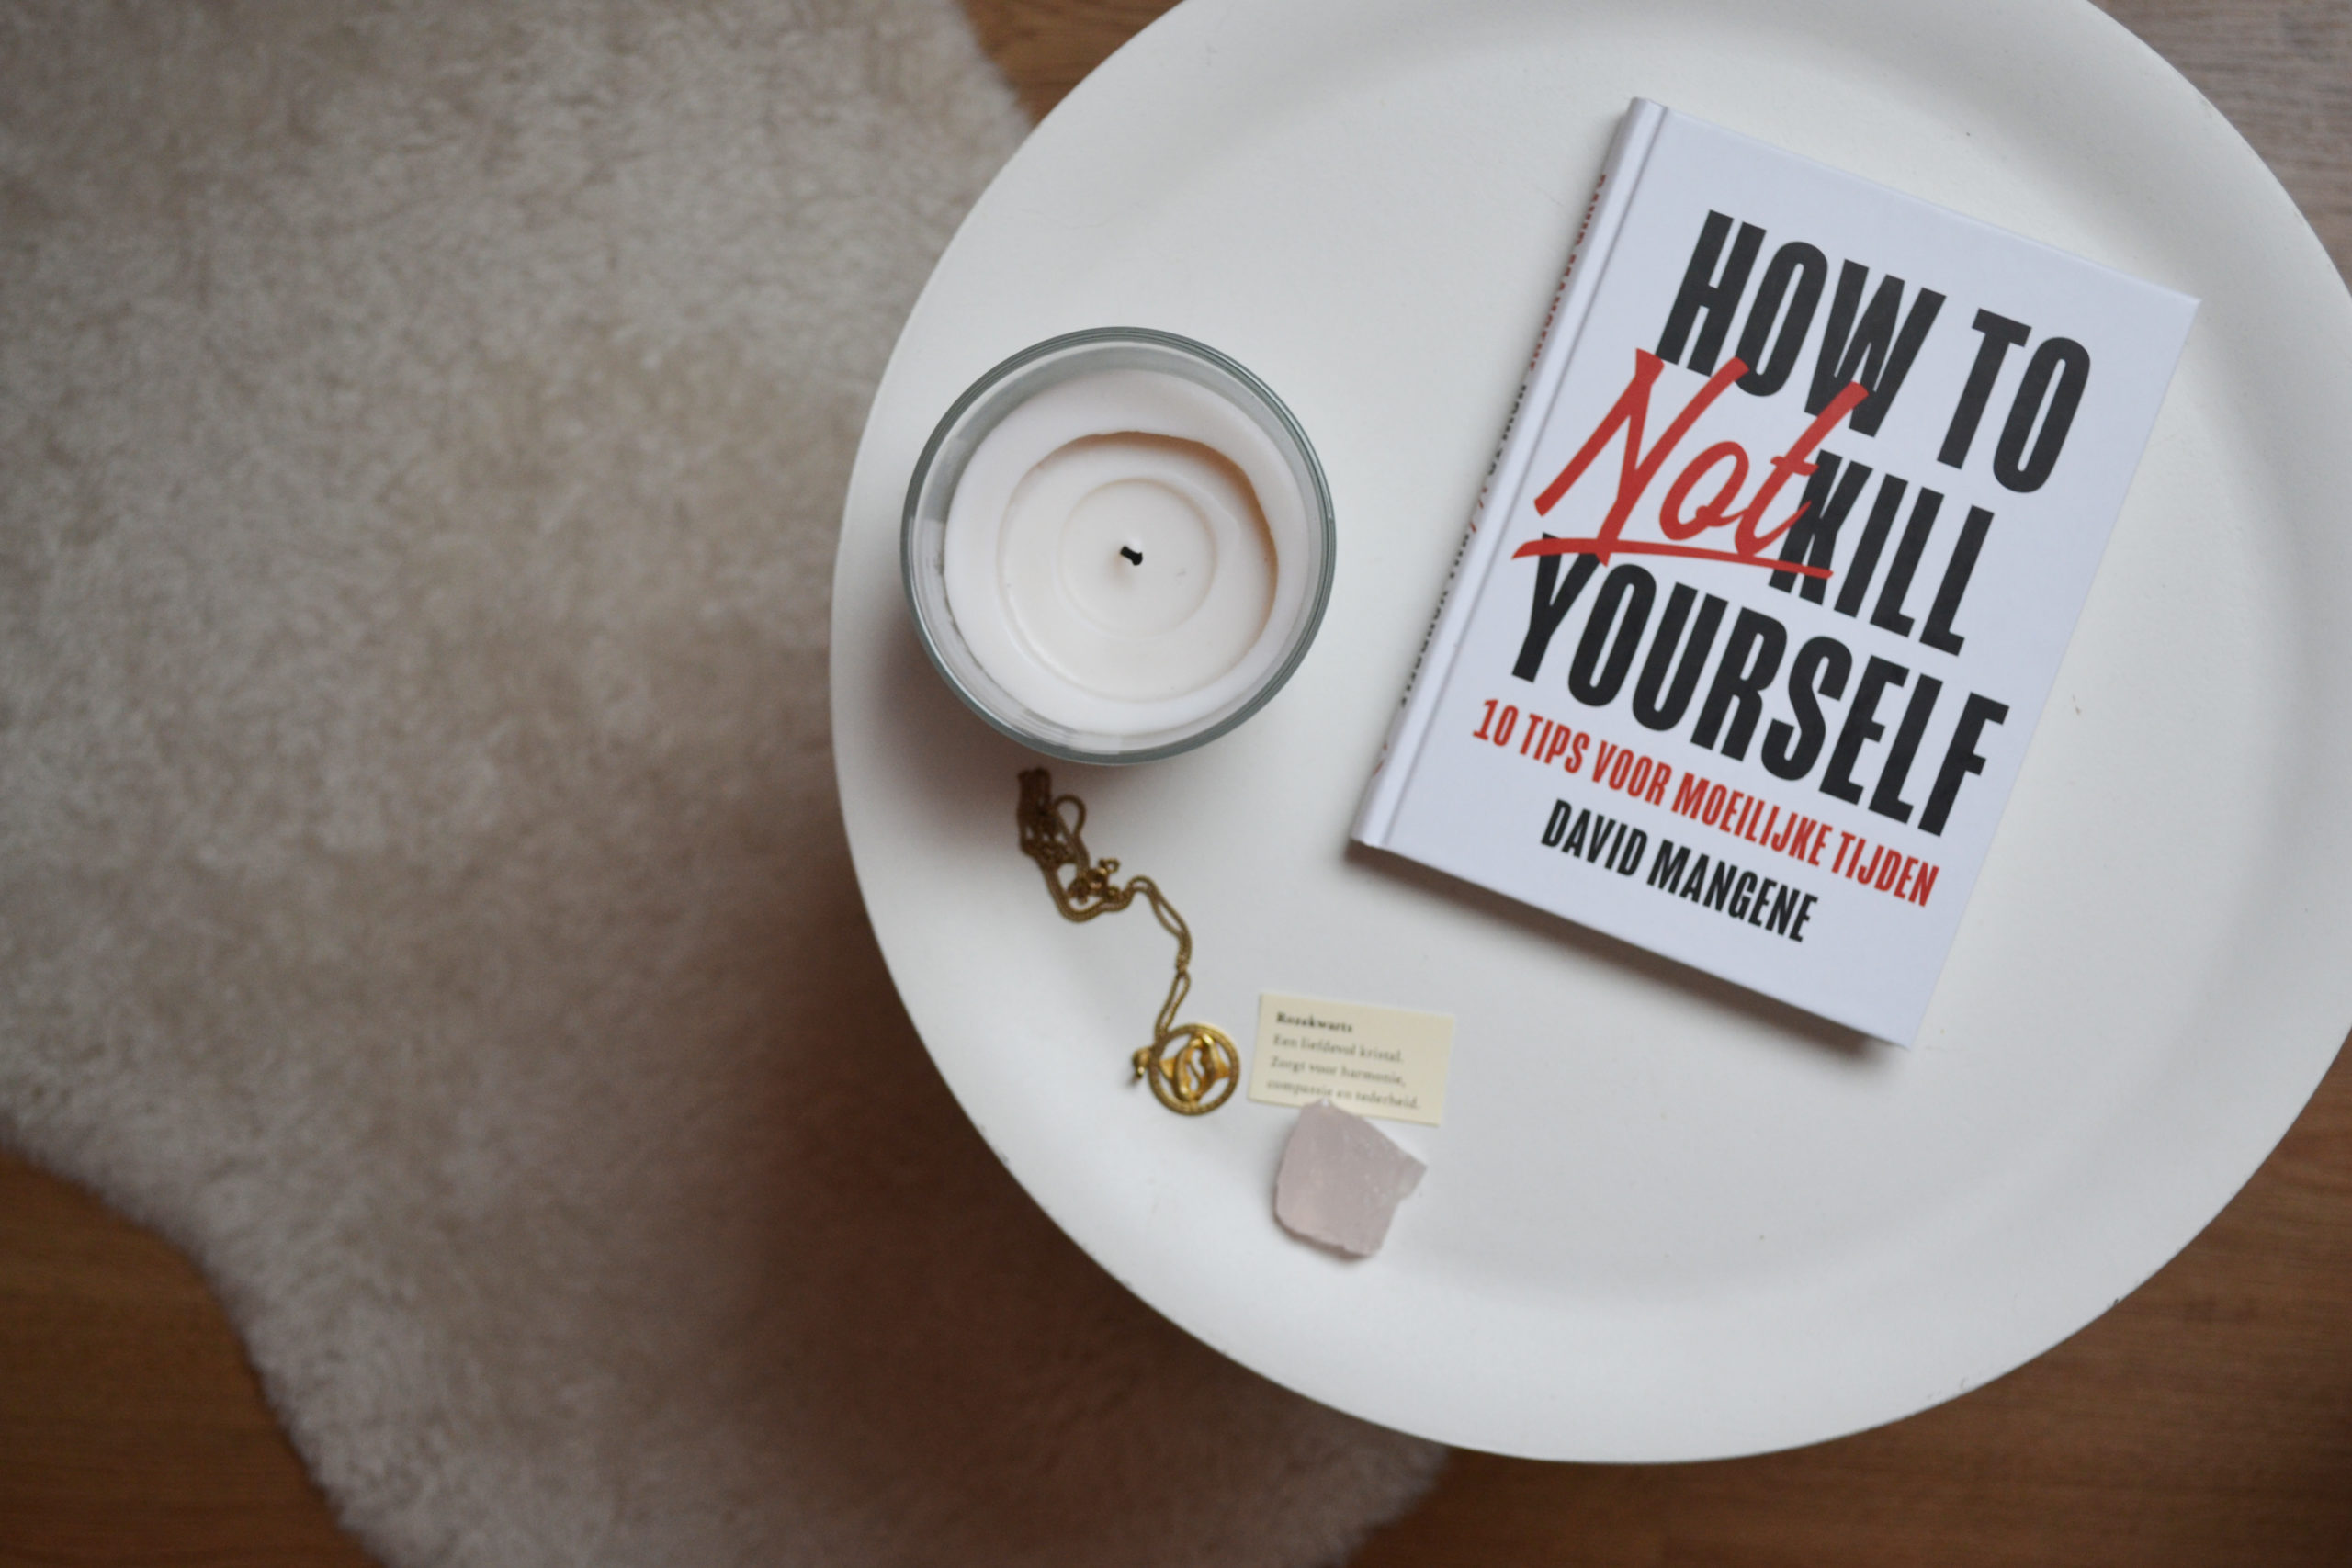 How to not kill yourself - David Mangene